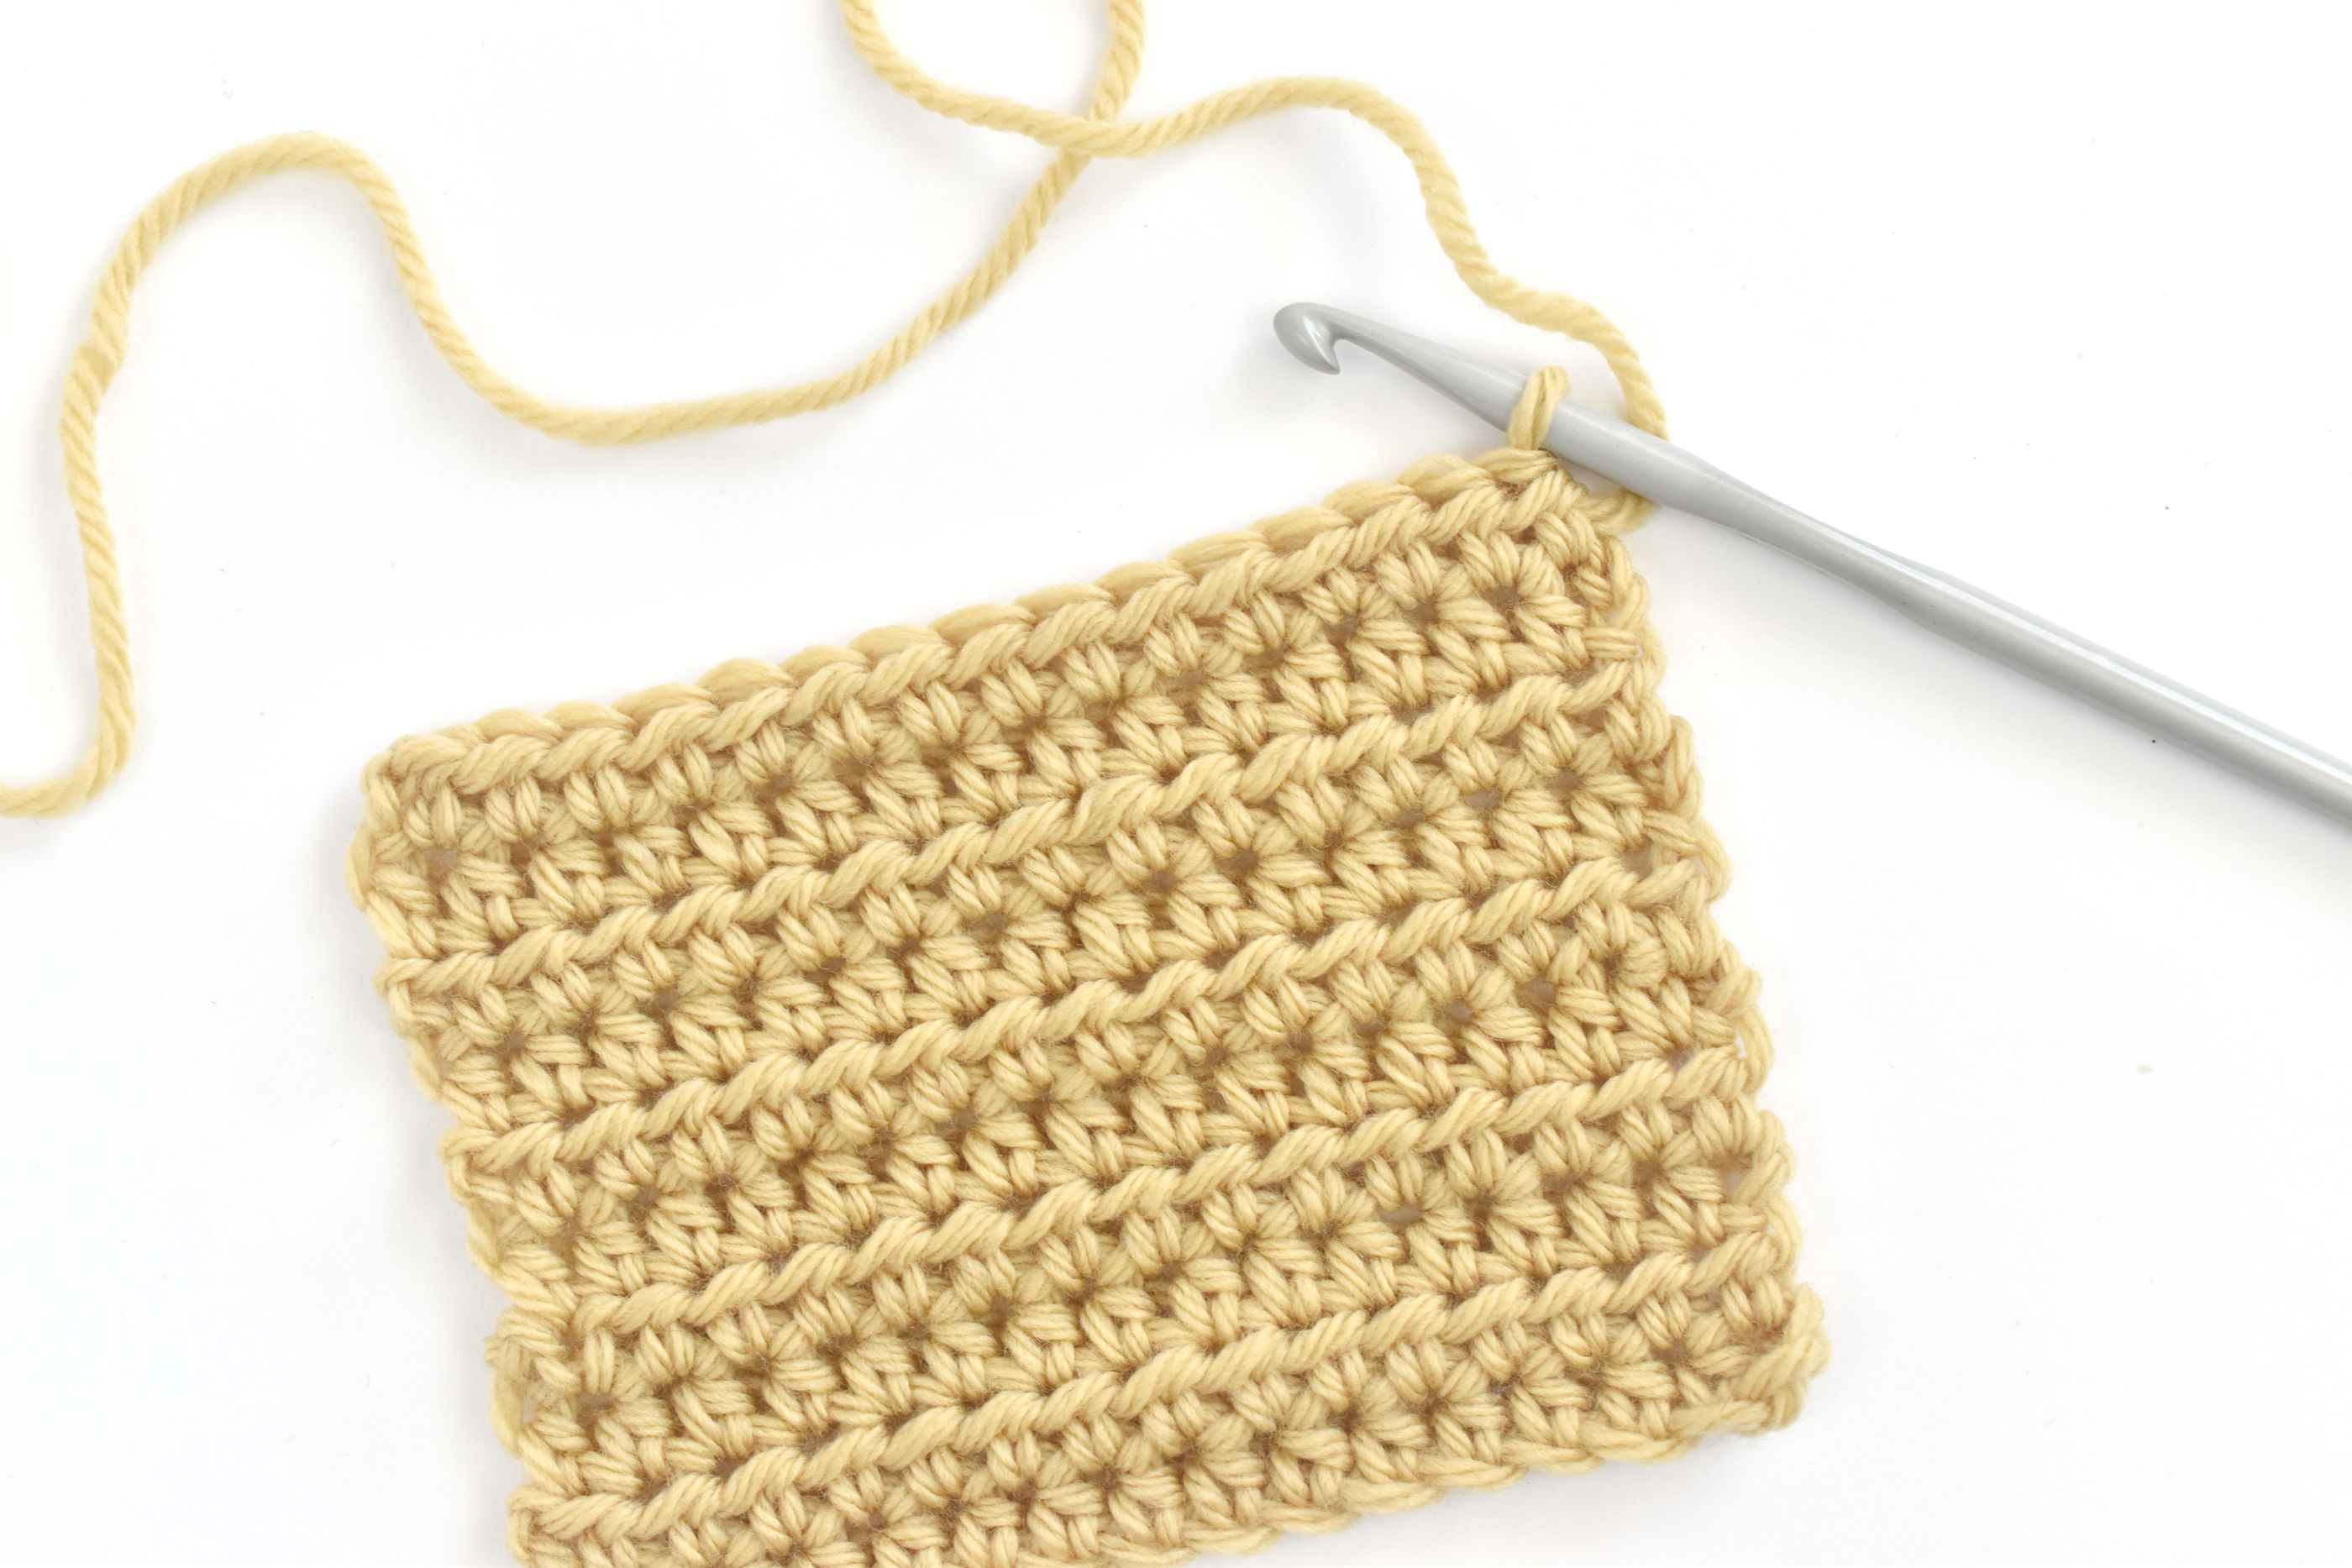 Learn How to Work the Half Double Crochet Stitch